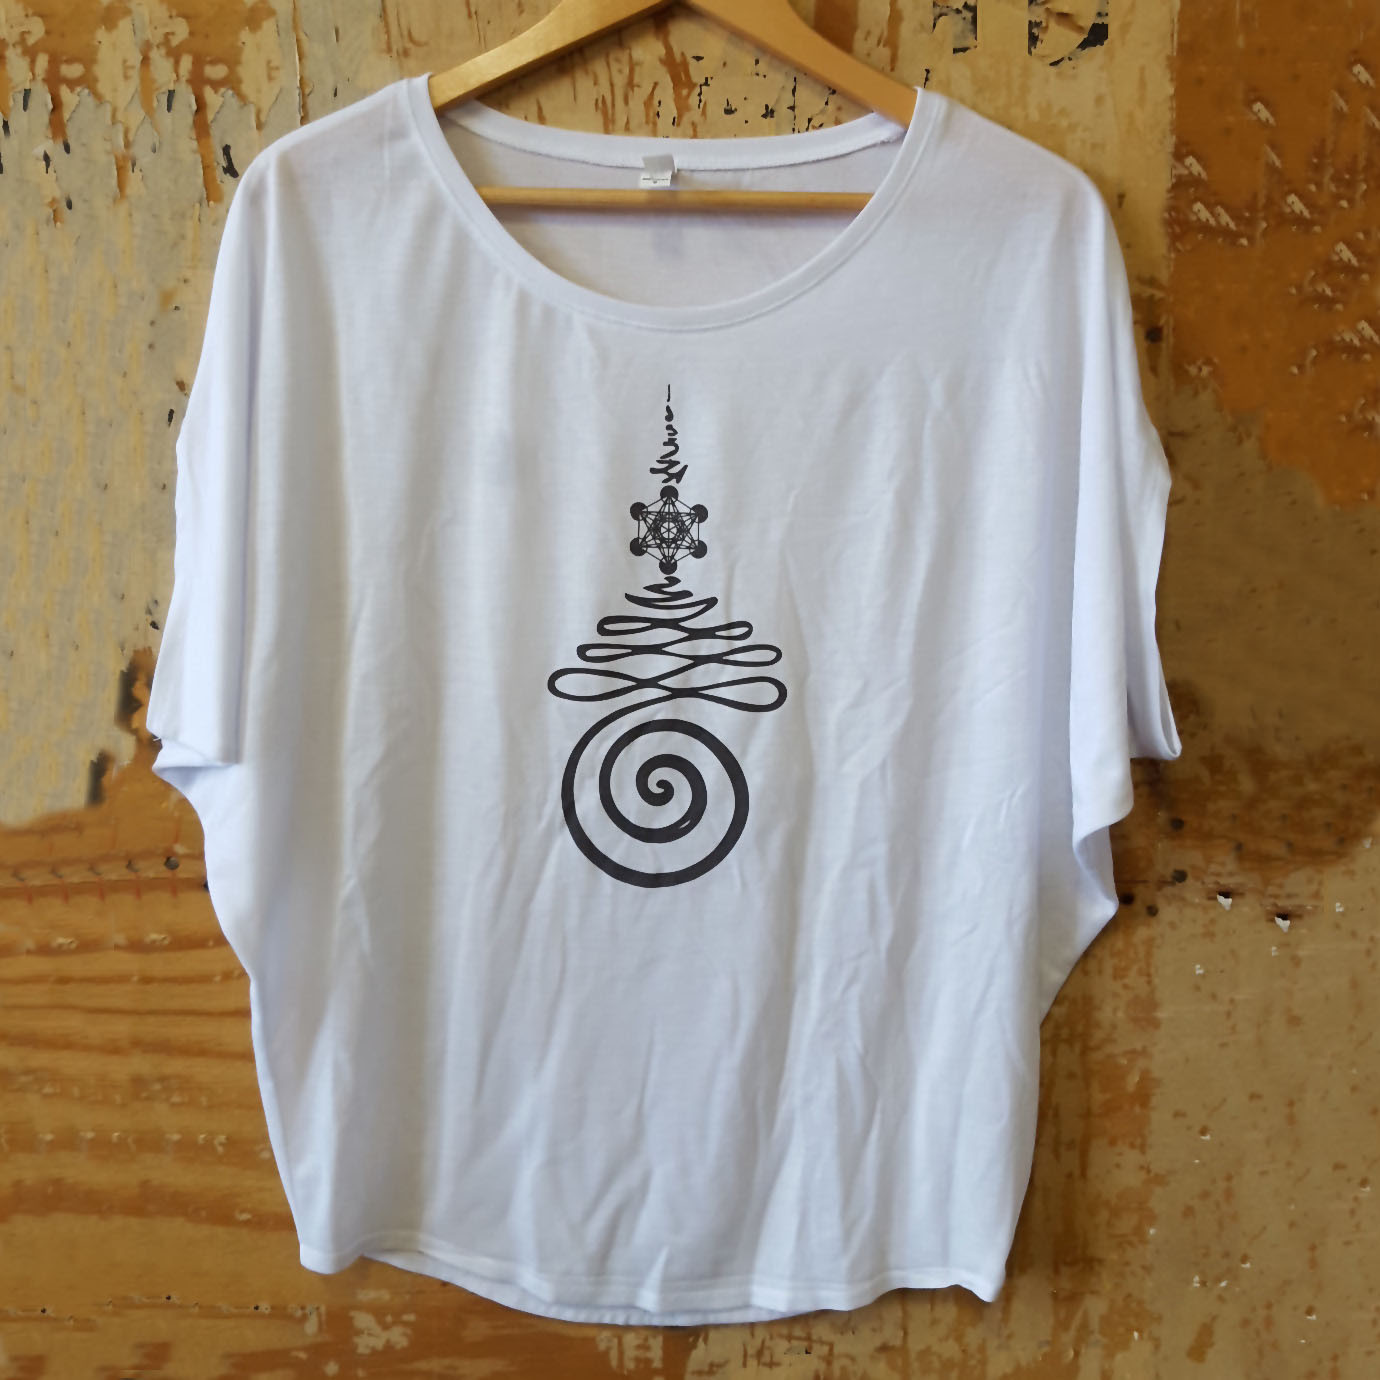 printed t shirt example